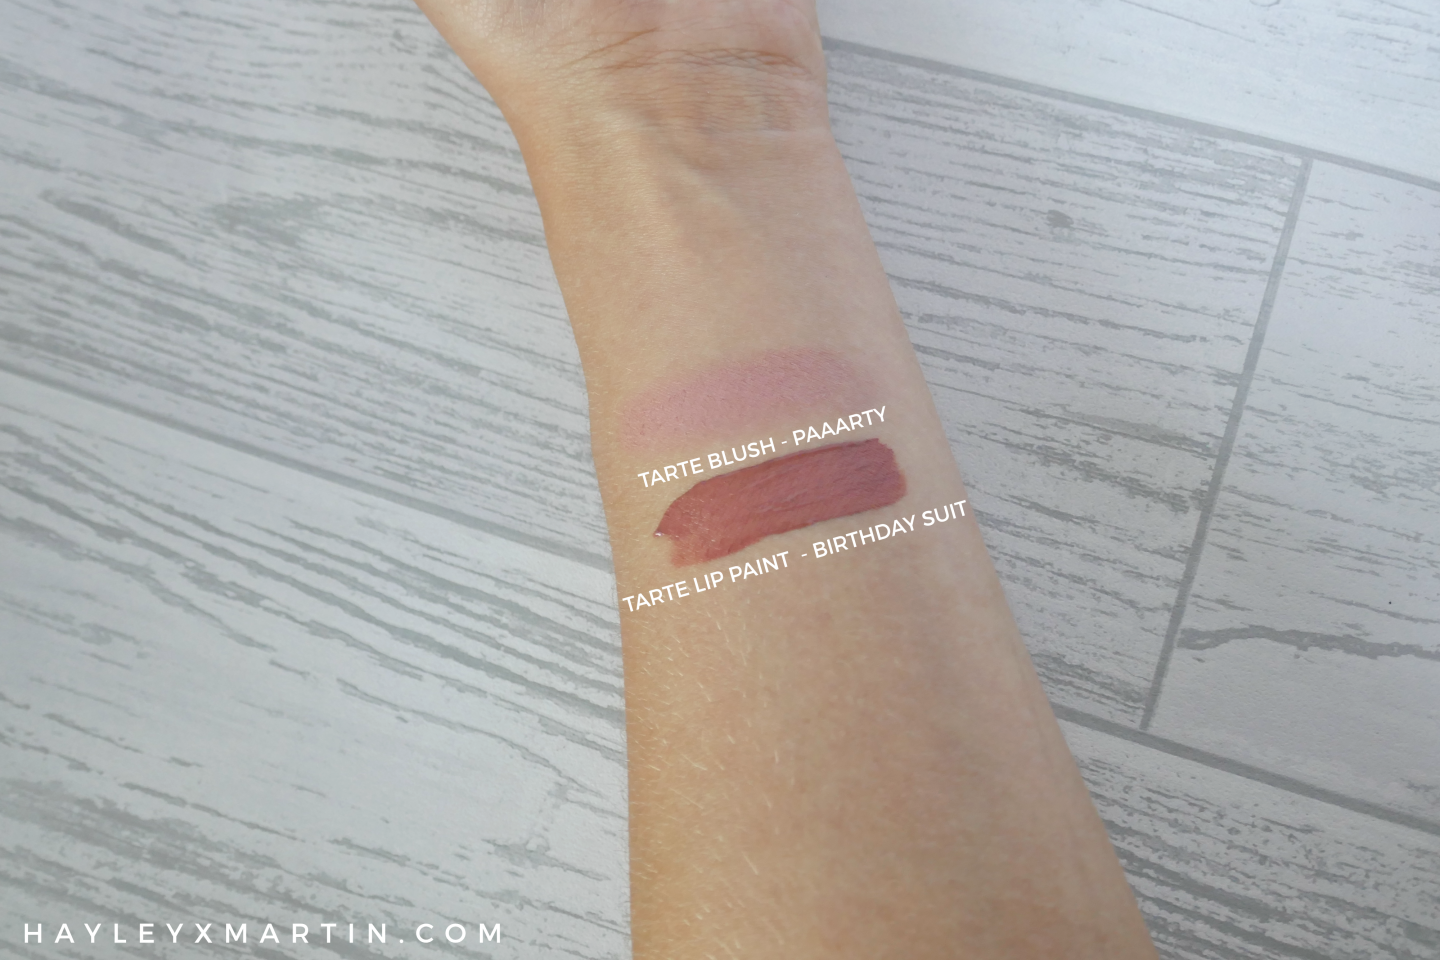 HAYLEYXMARTIN - TARTE LIP PAINT BIRTHDAY SUIT - BLUSH PAAARTY